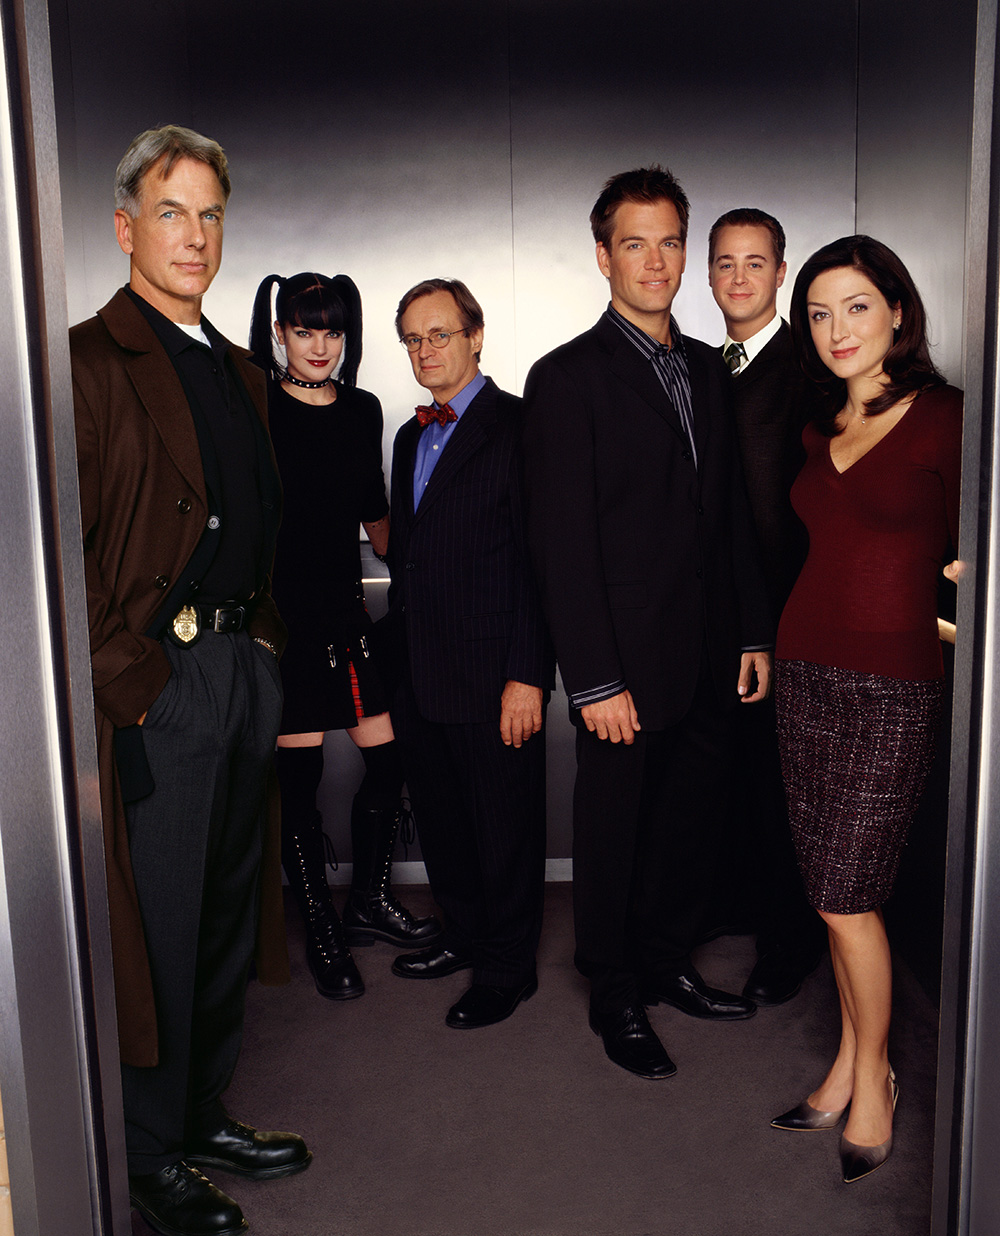 NCIS Loses Actor Michael Weatherly After 13 Years Of 'Very